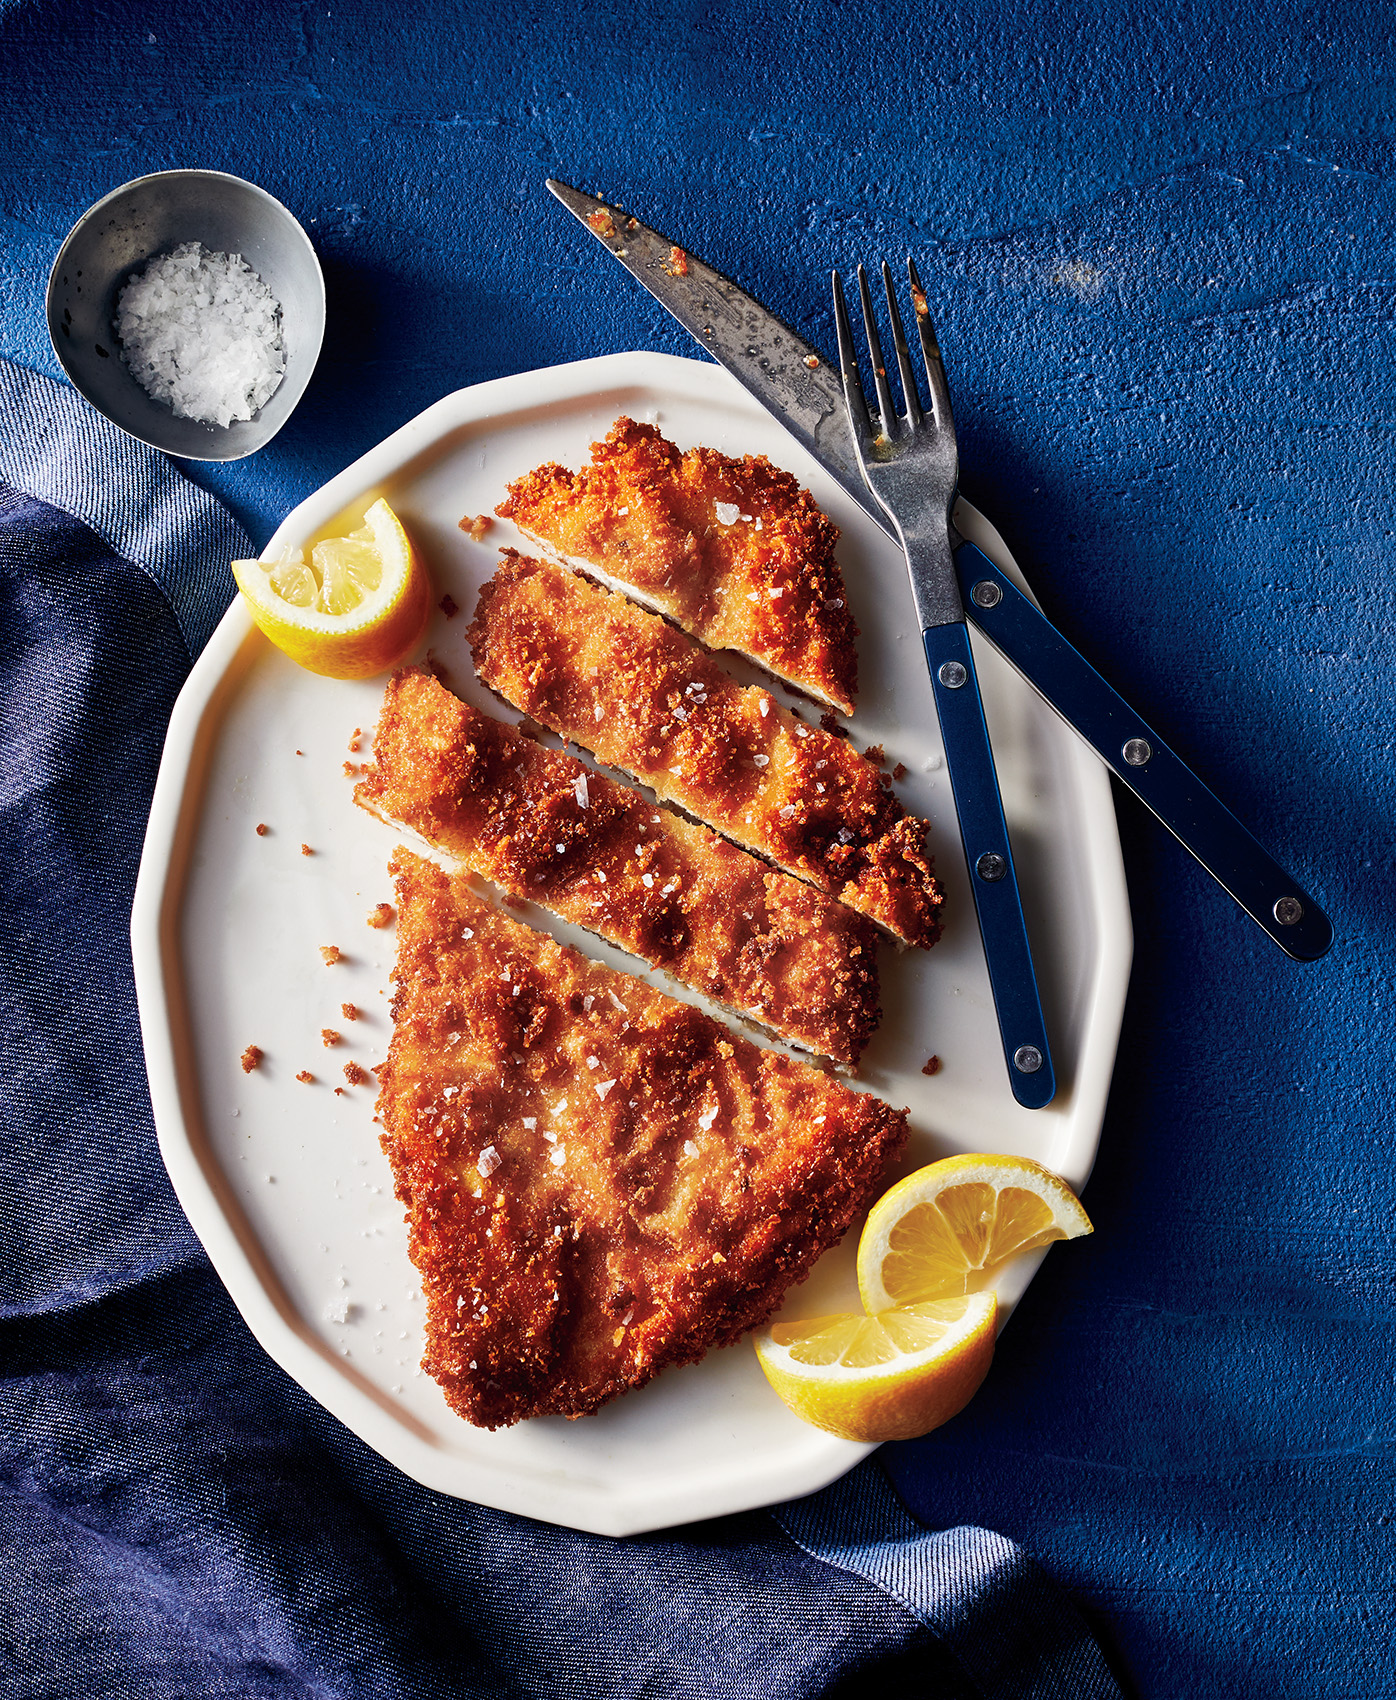 Crispy chicken cutlets on a blue plate